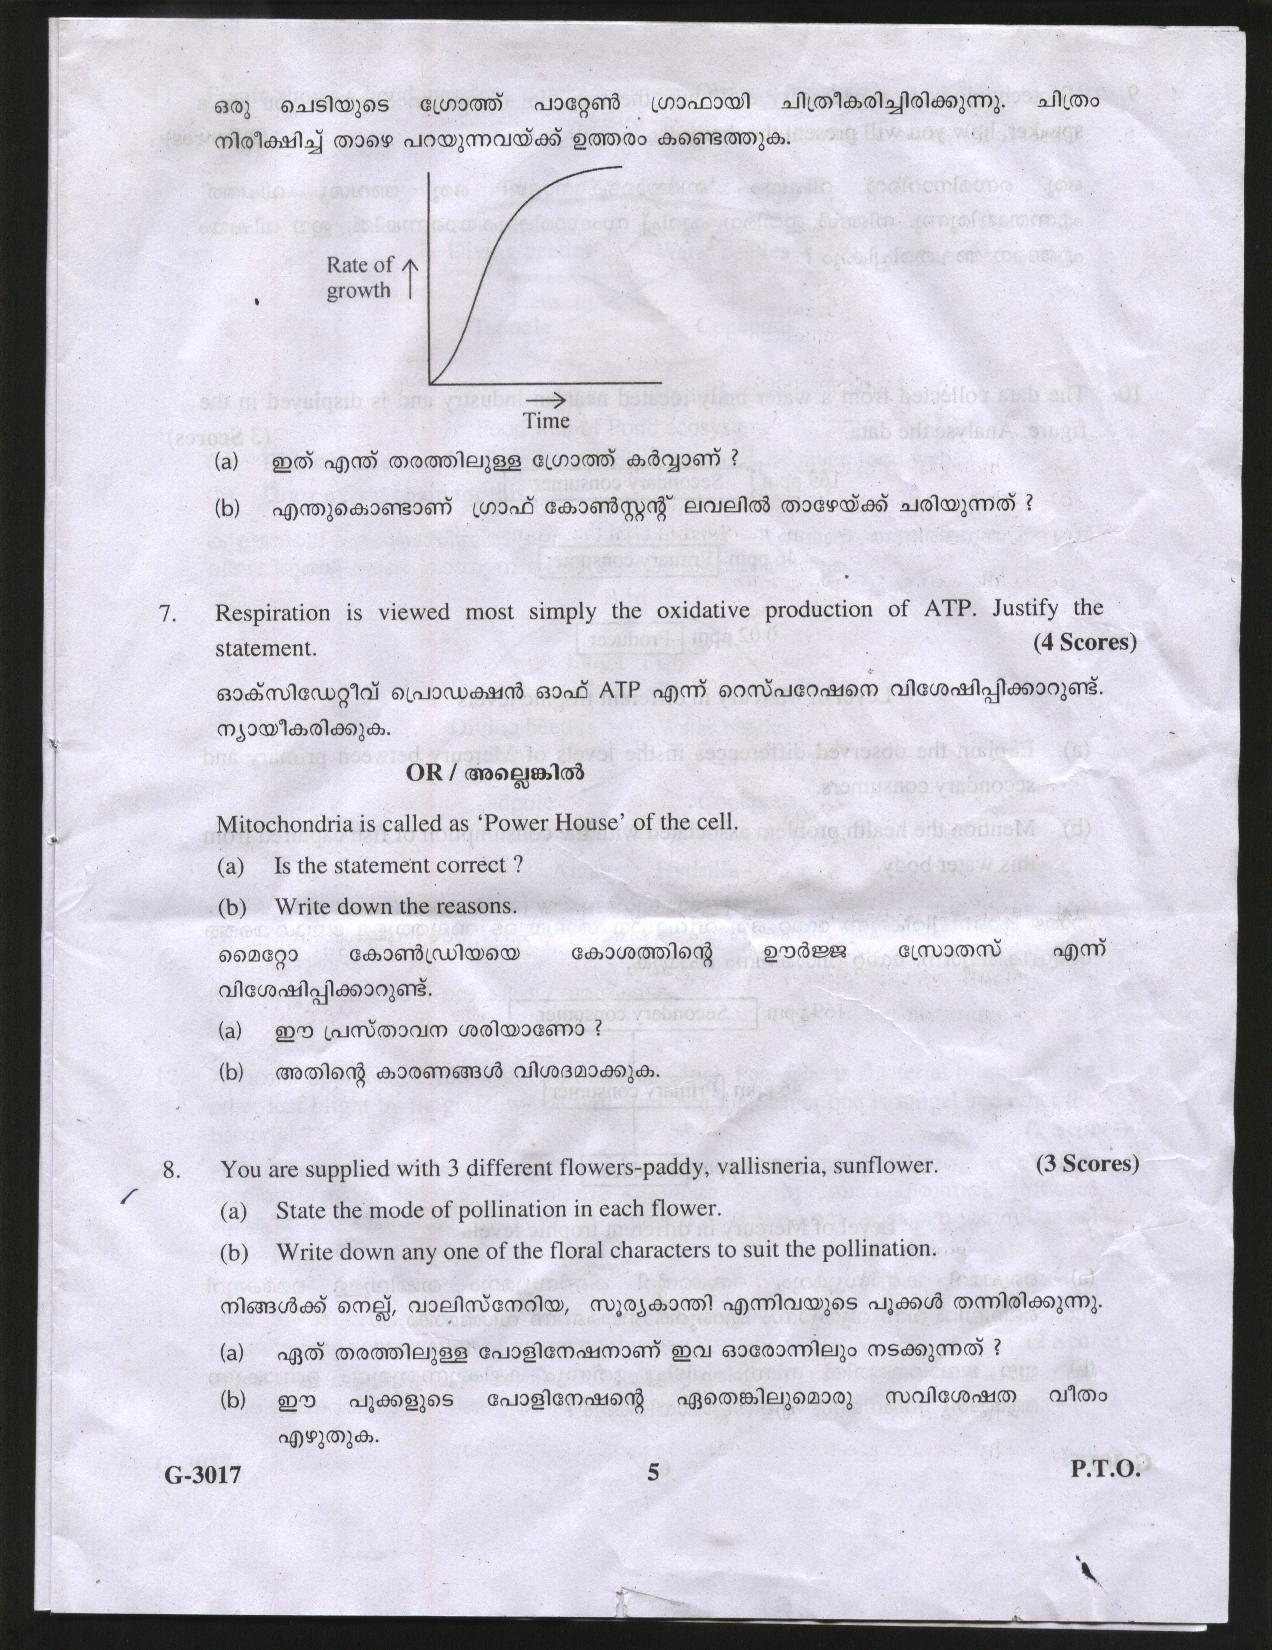 Kerala State biology model question papers